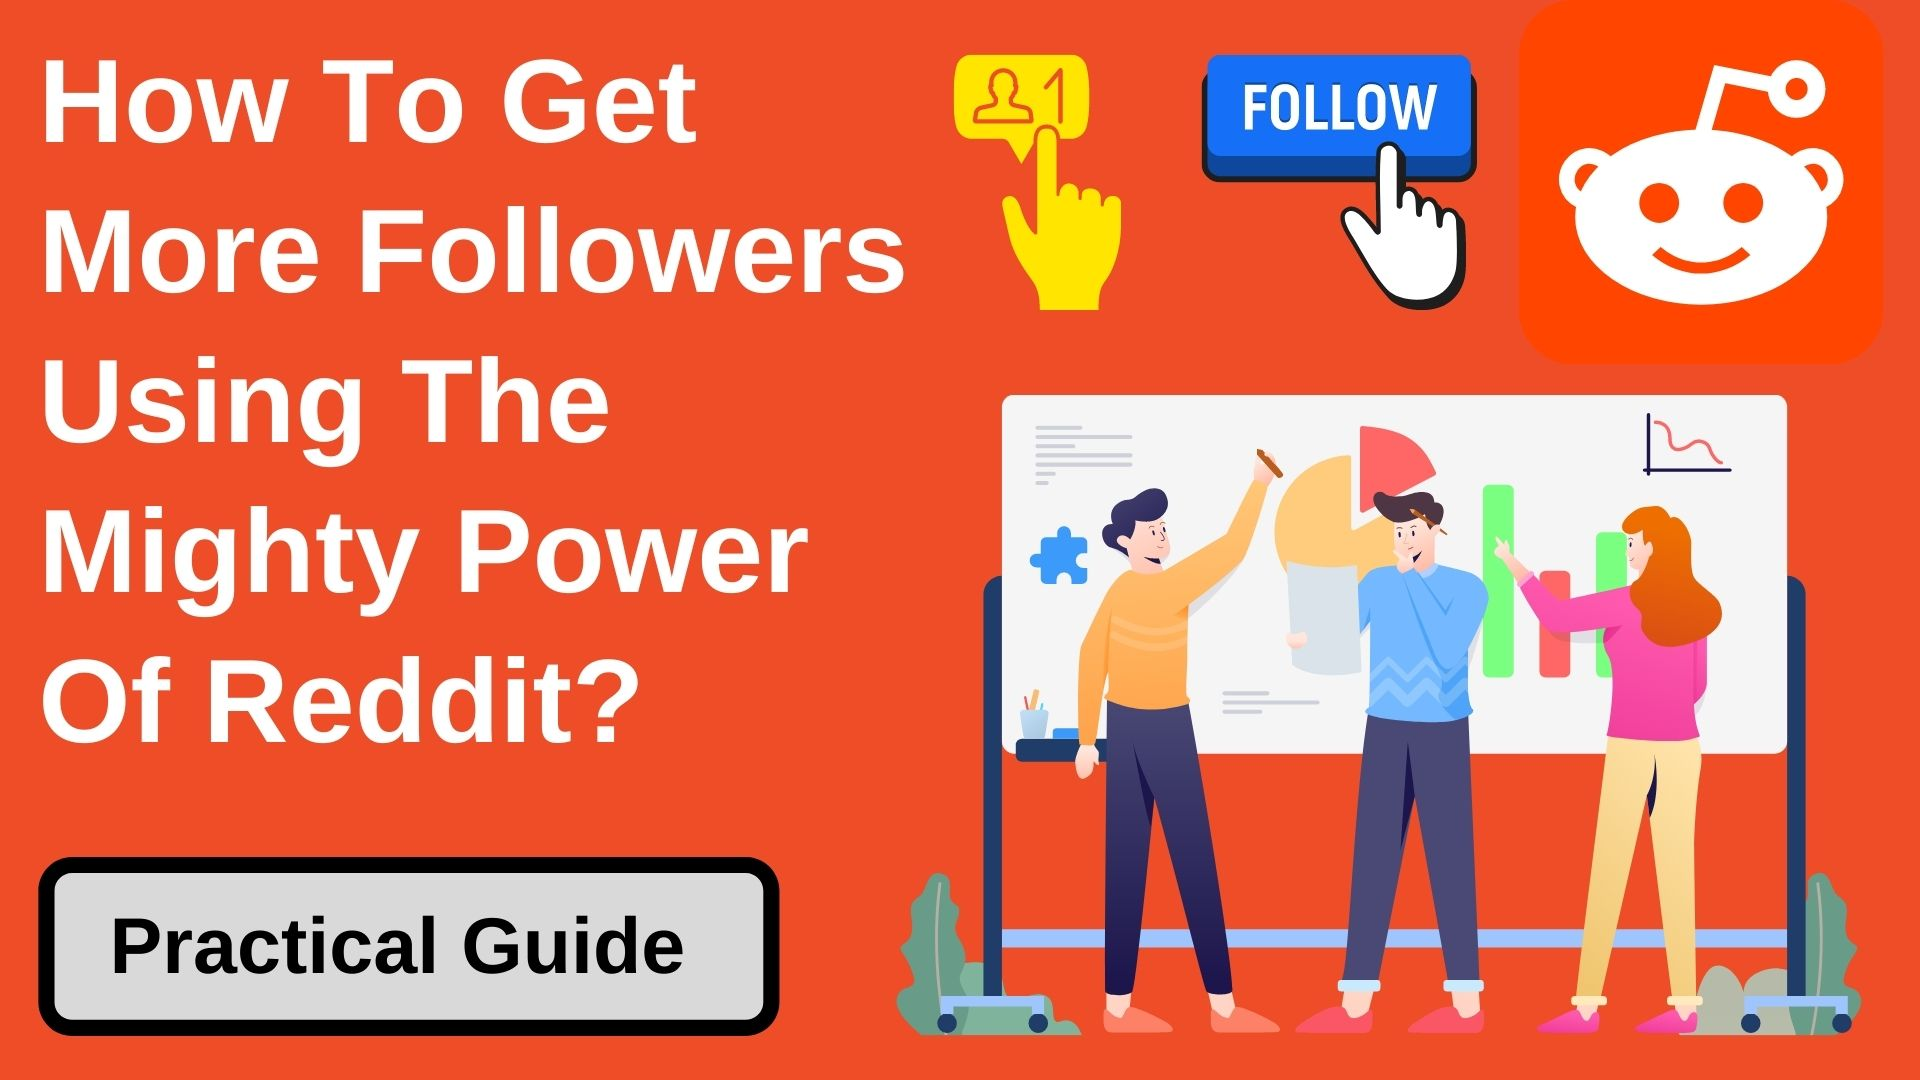 How To Get More Followers Using Reddit?